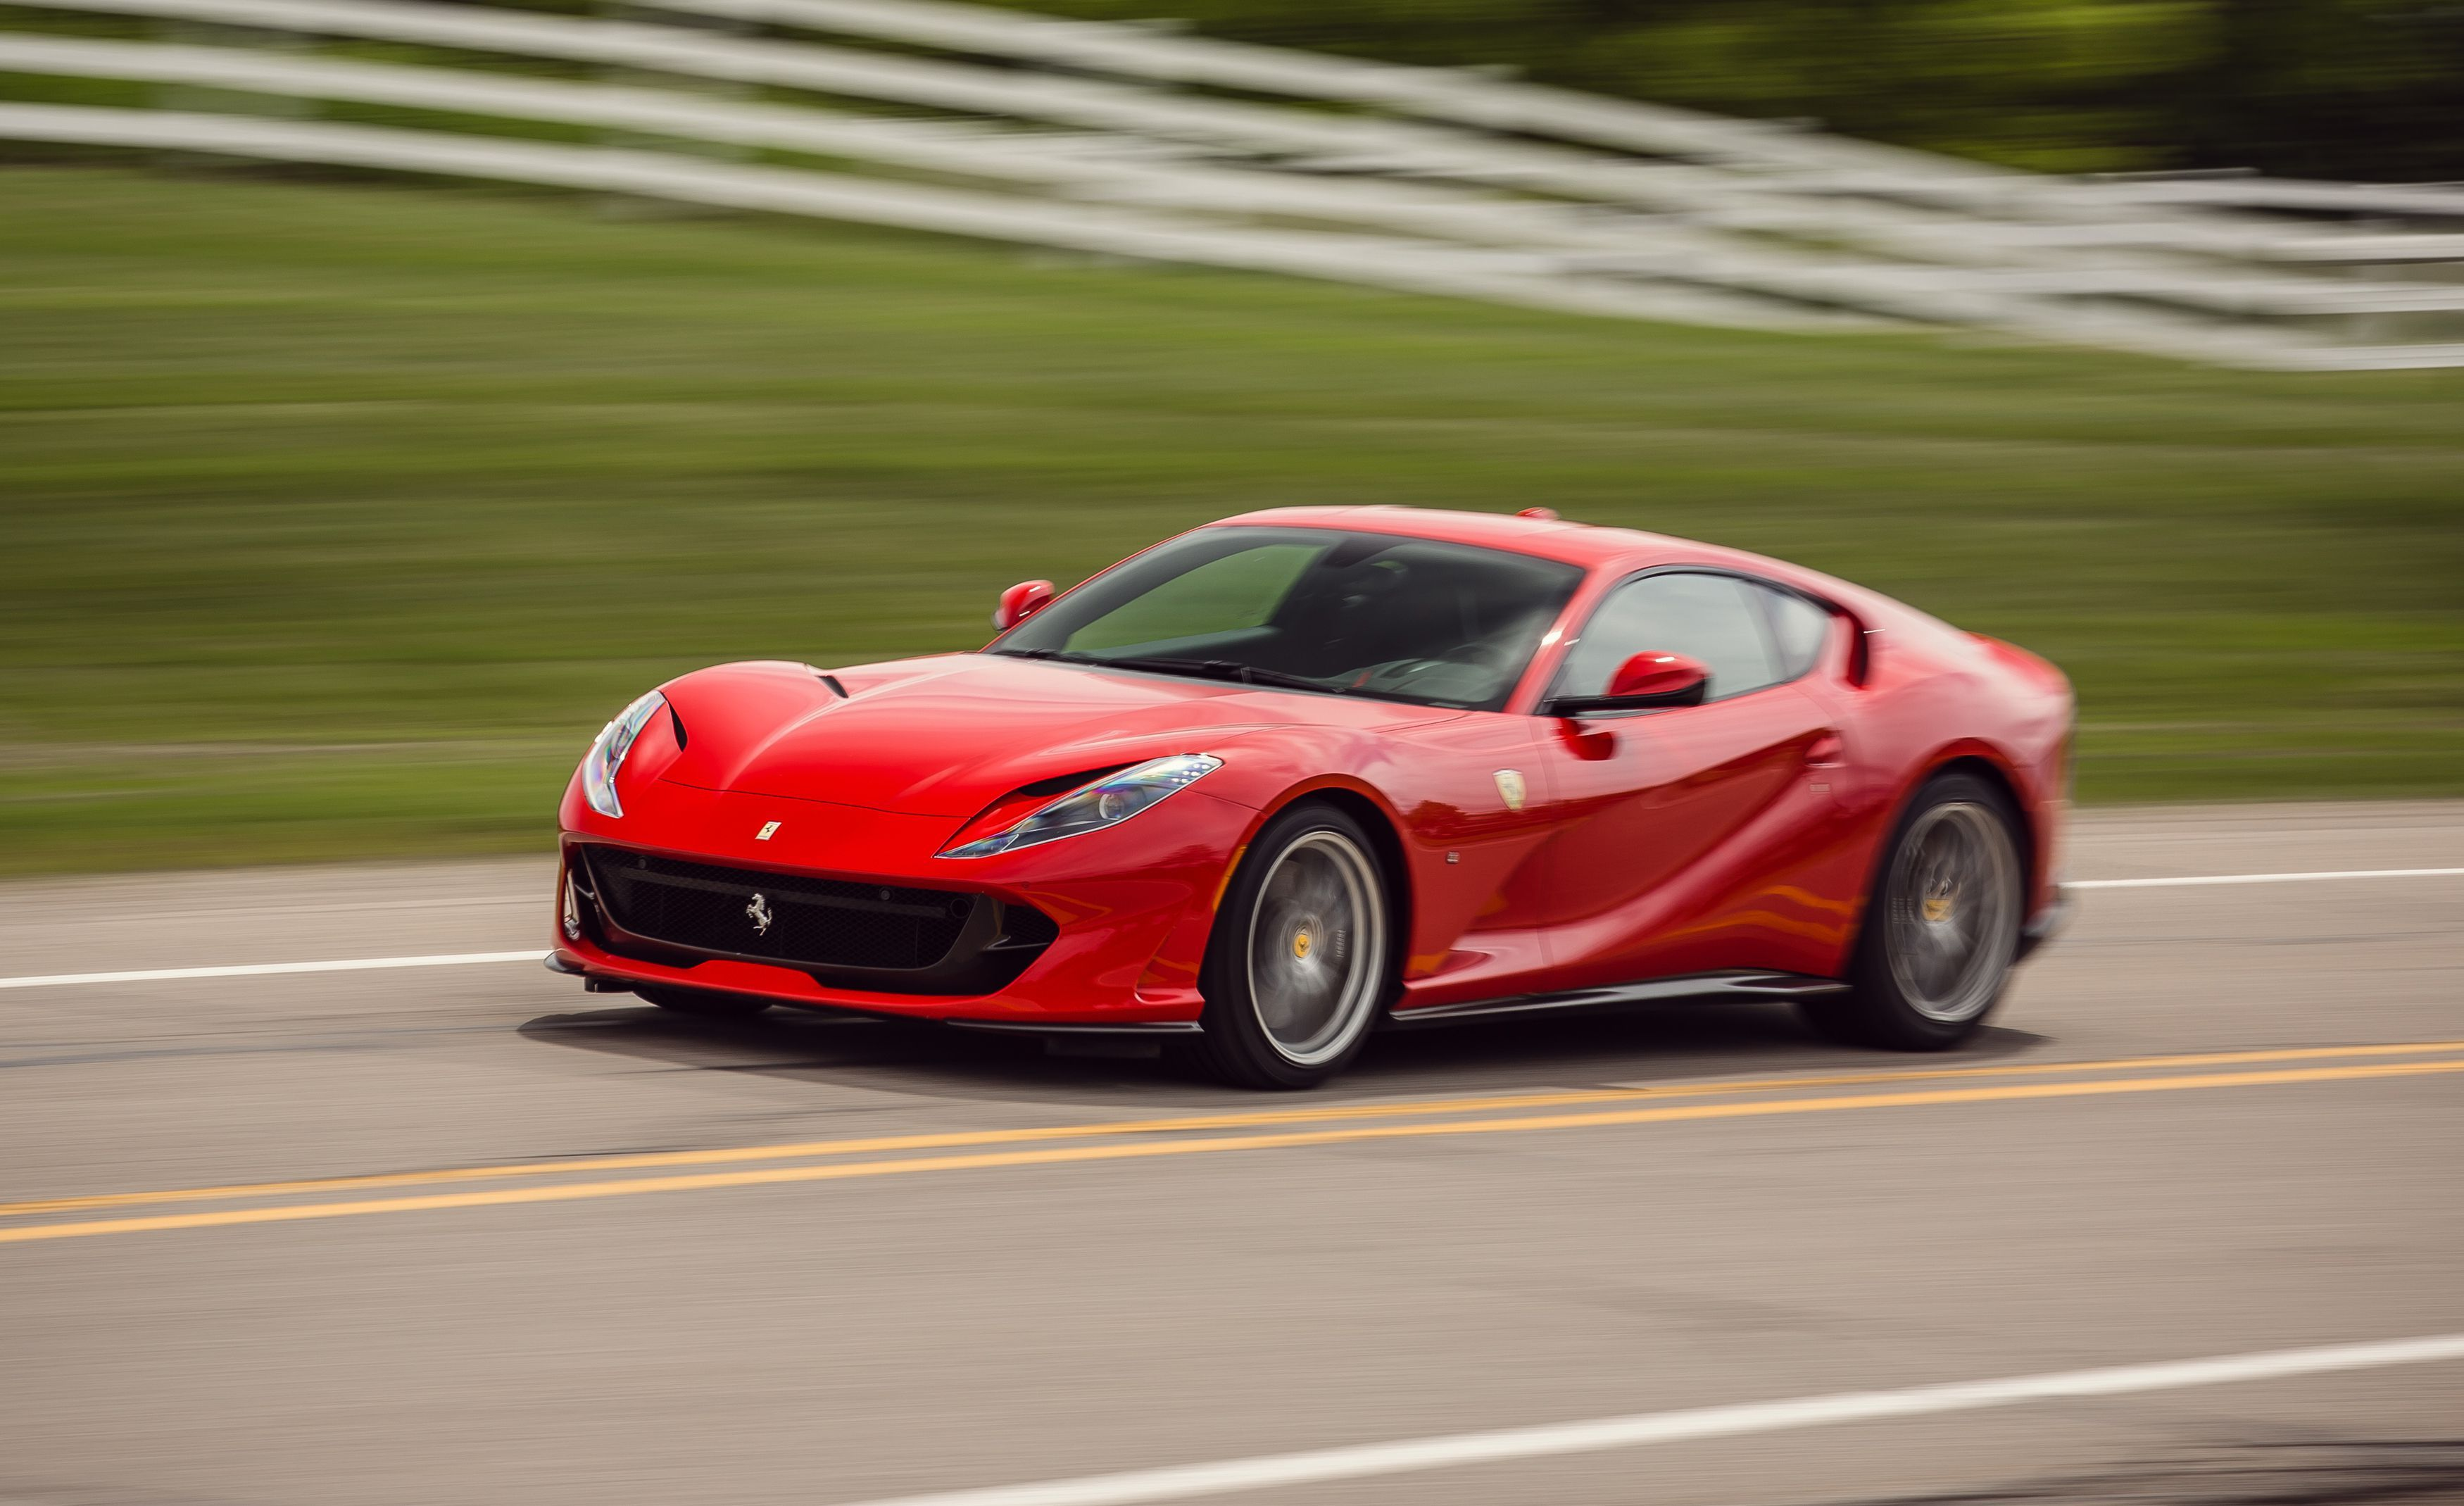 2019 Ferrari 812 Superfast Review, Pricing, and Specs